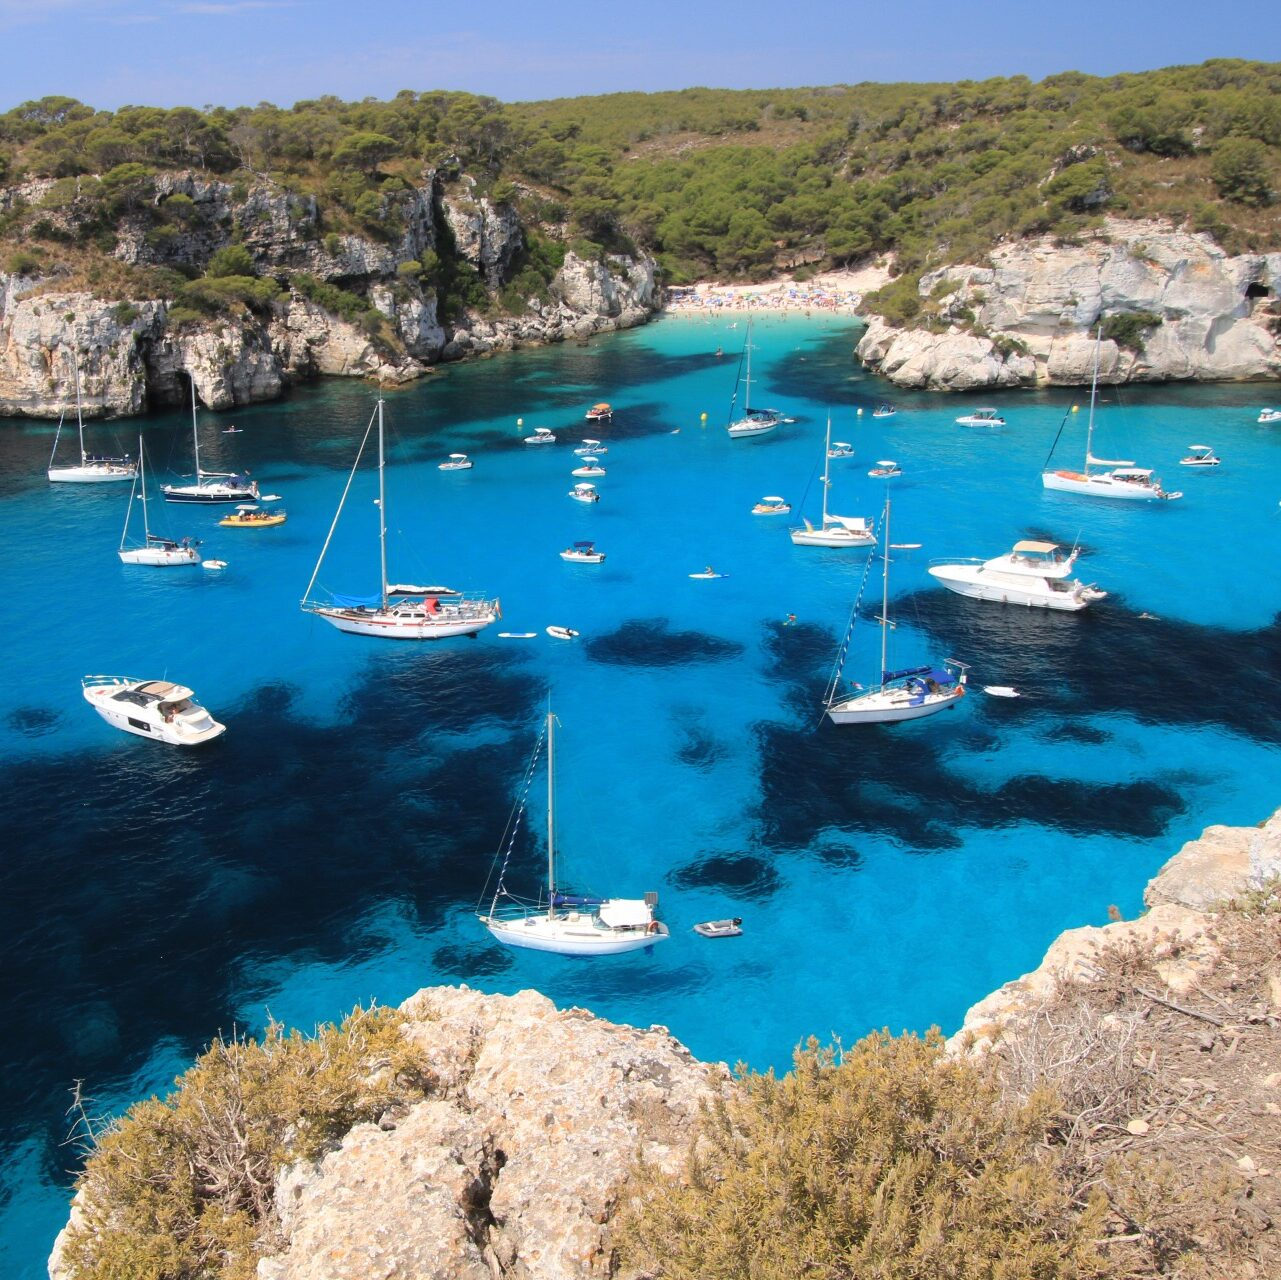 Cala Macarella – The beach without hotels and shops around